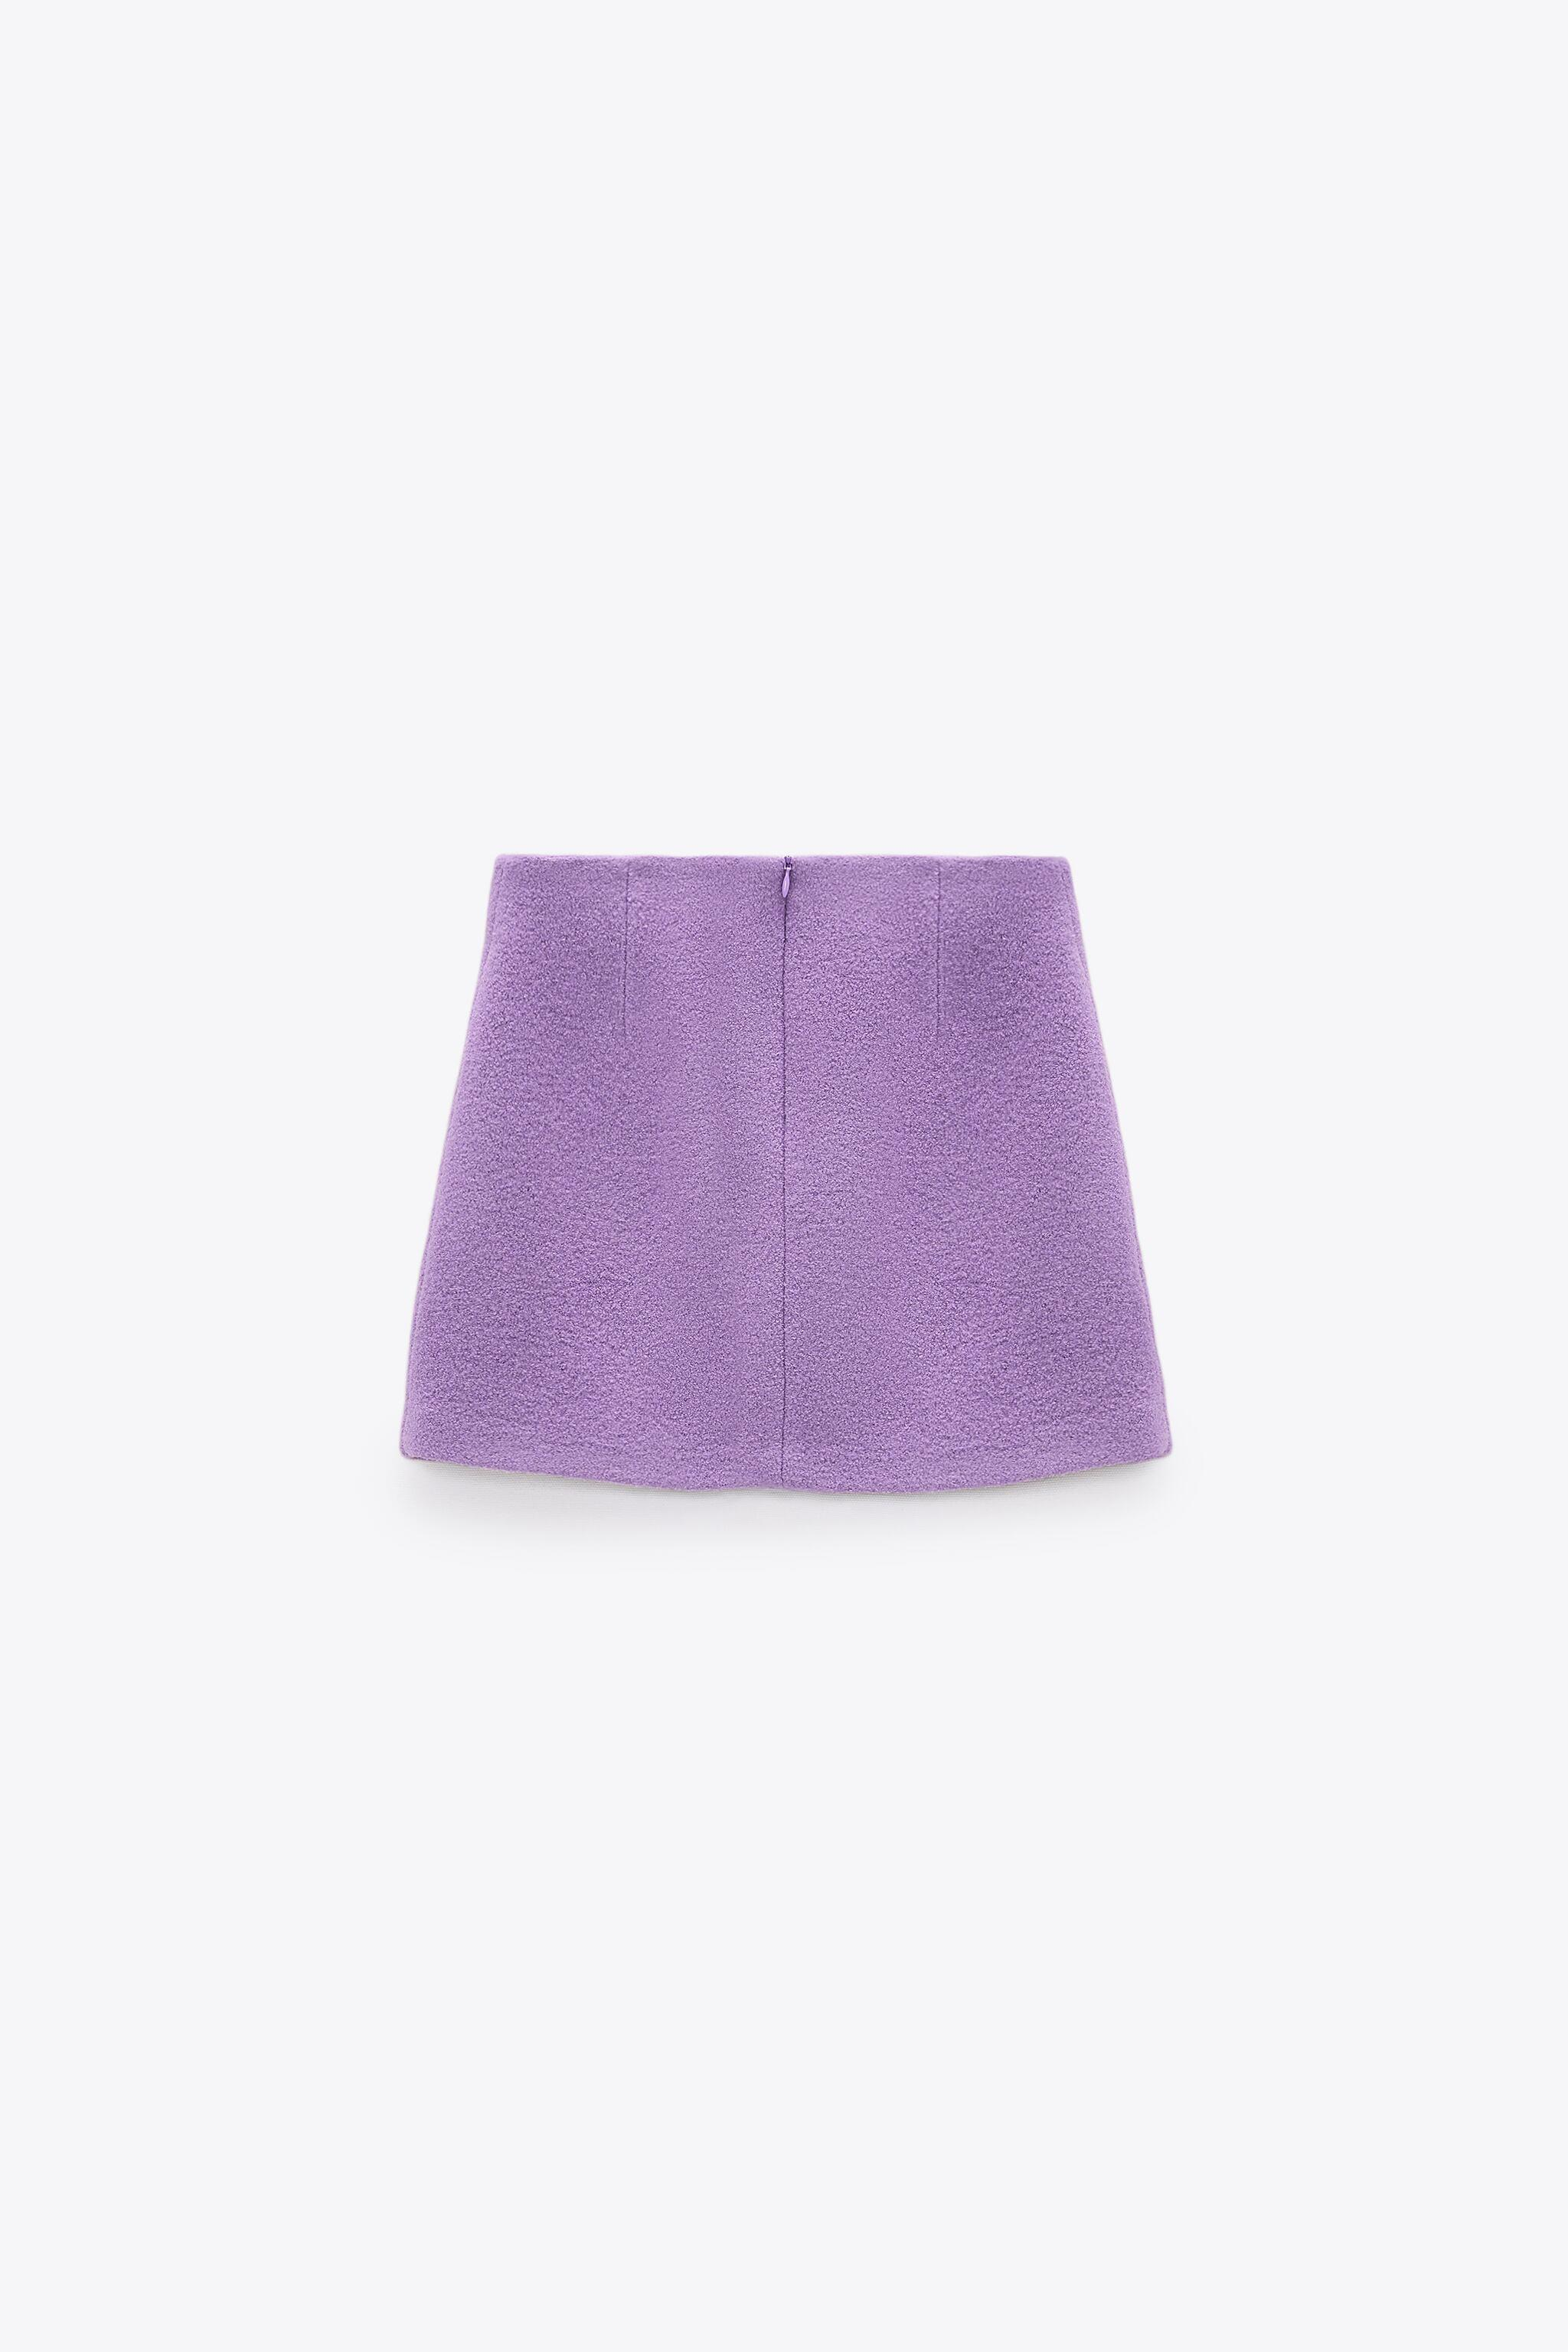 LIMITED EDITION BUTTONED SKIRT 4